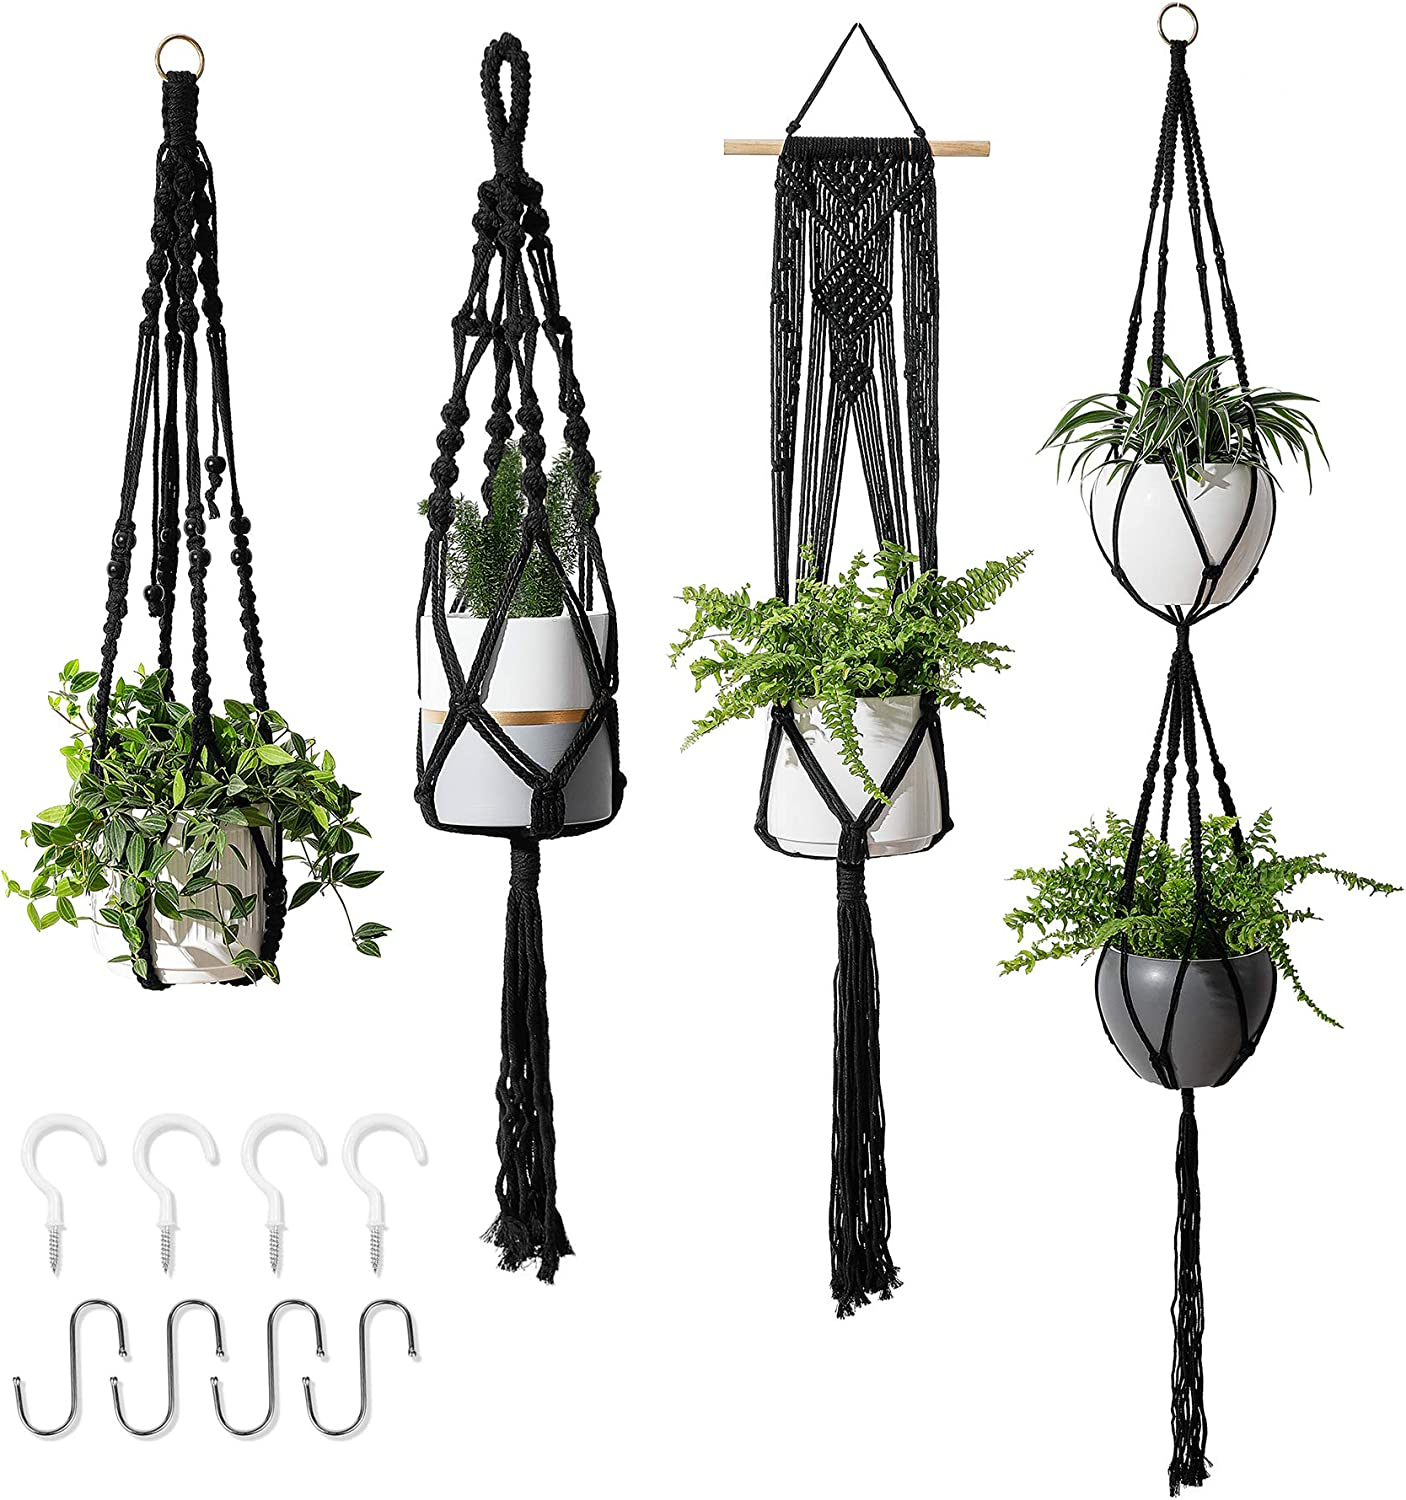 """POTEY 640101 4-Pack Macrame Plant Hangers - with 8 Hooks Hanging Planters for Indoor Plants Handmade Cotton Rope Hanging Planters Hanging Plant Holder for Boho Decor 35""""/41""""/46""""/67"""",Black"""